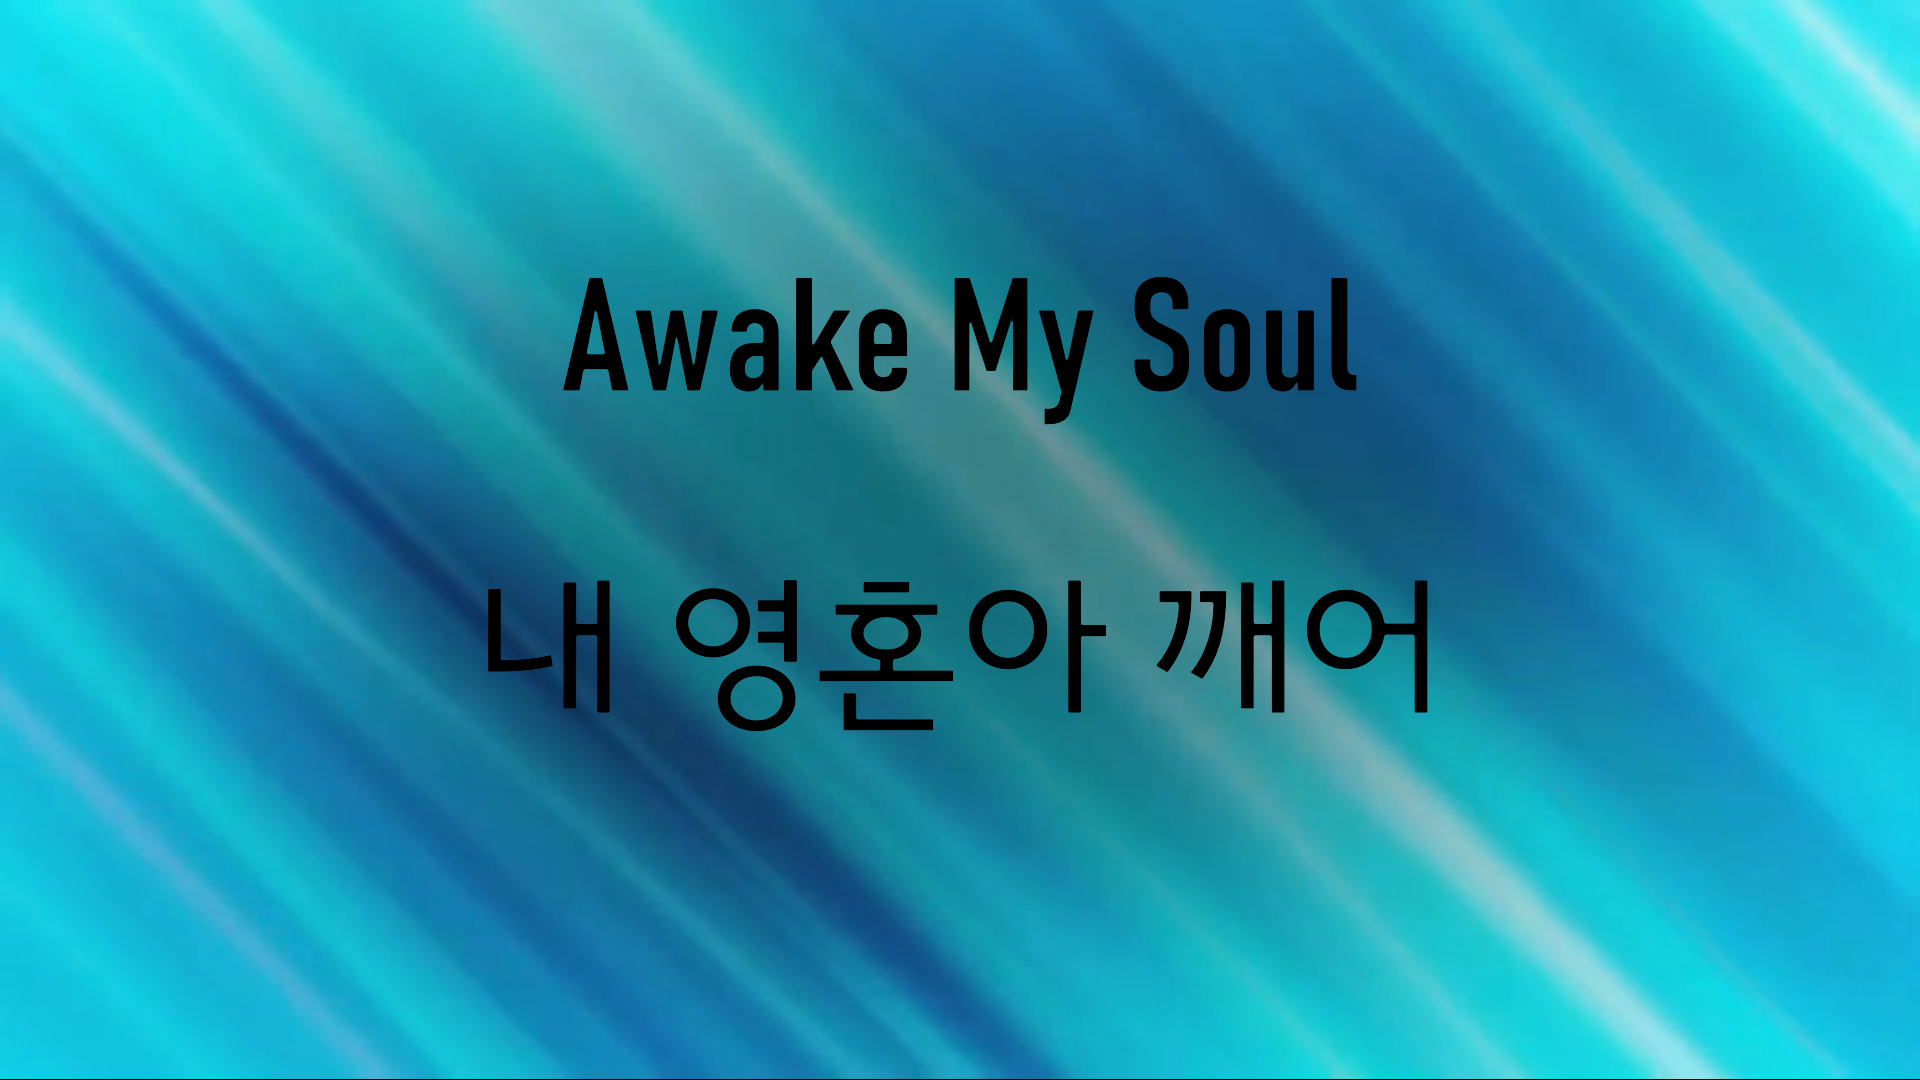 Awake My Soul/내 영혼아 깨어 Youtube video thu